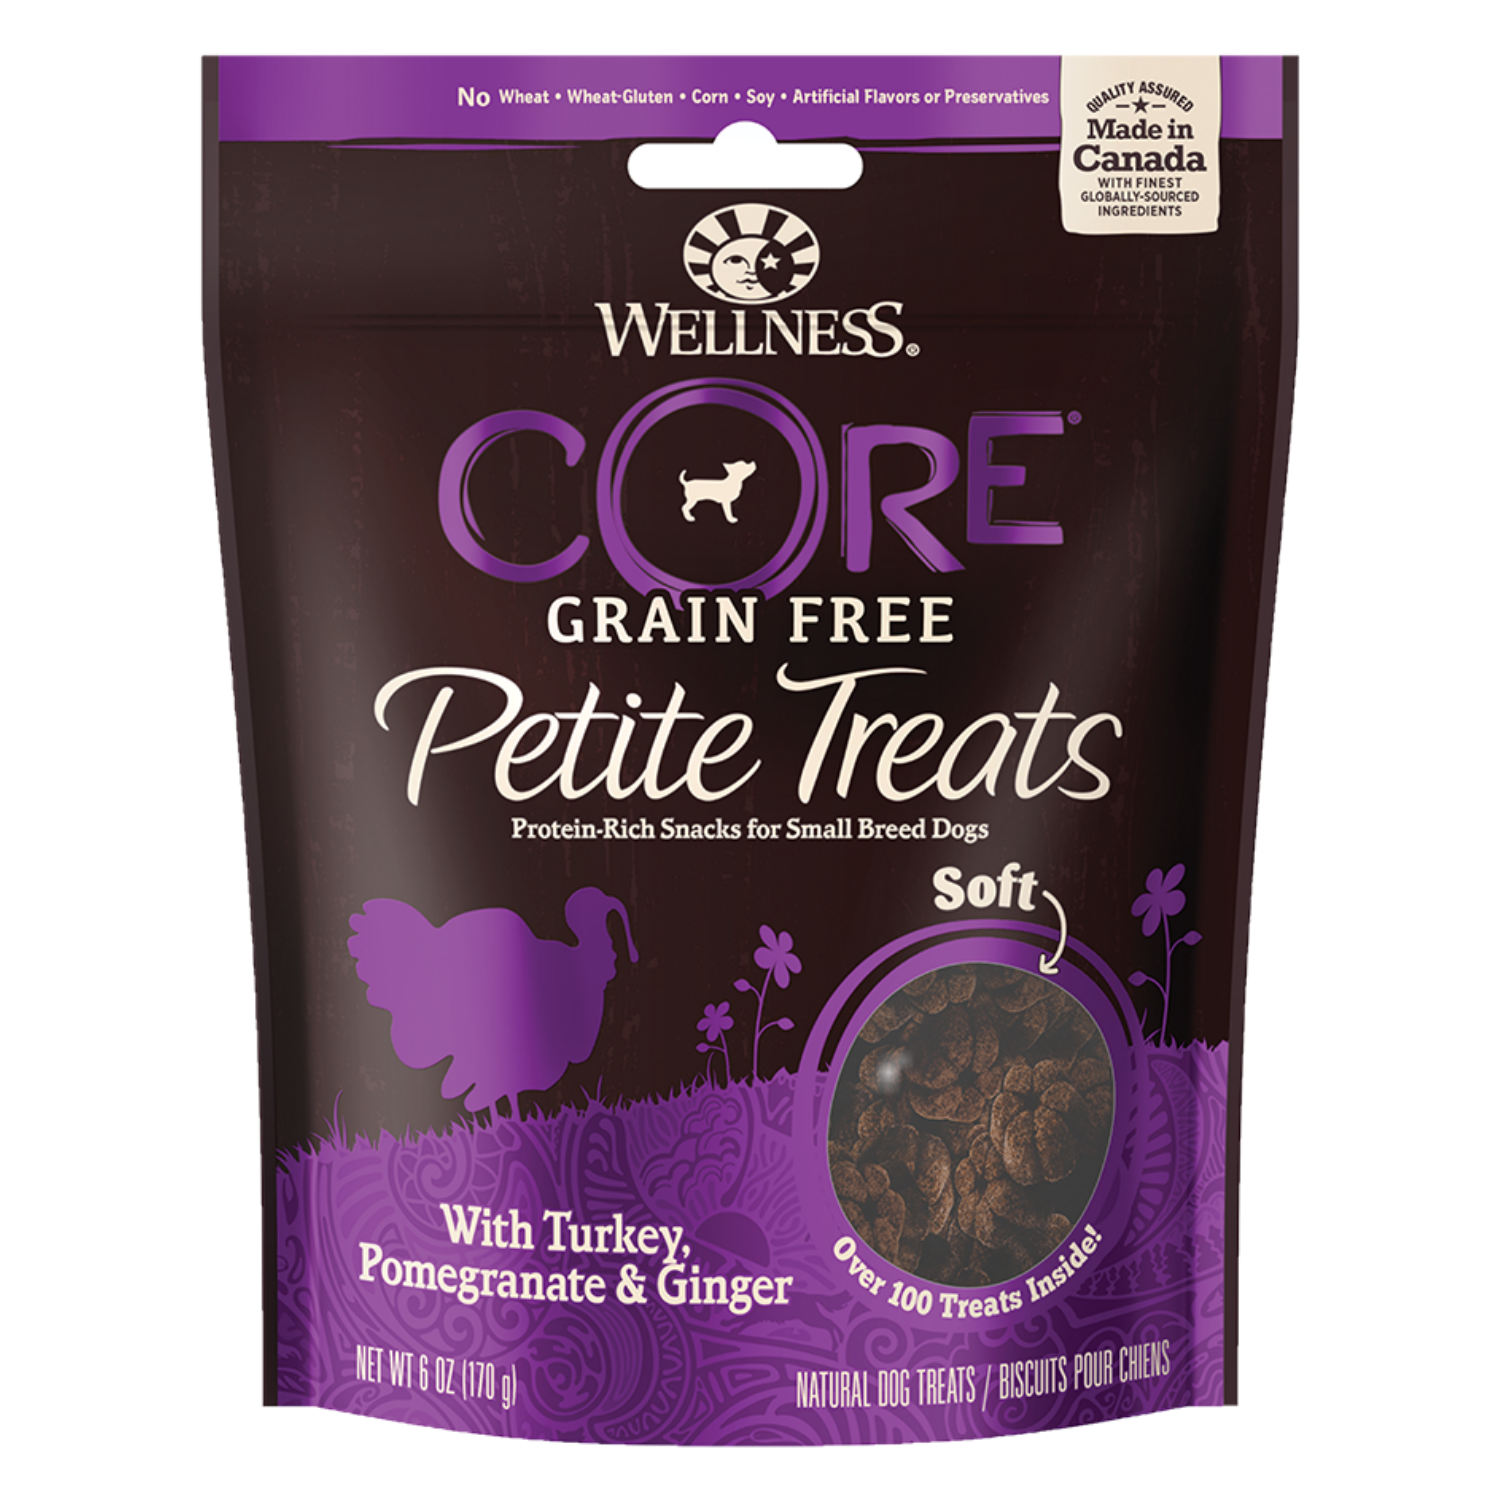 Wellness Petite Grain-Free Treats (Soft Turkey, Pomegranate & Ginger)